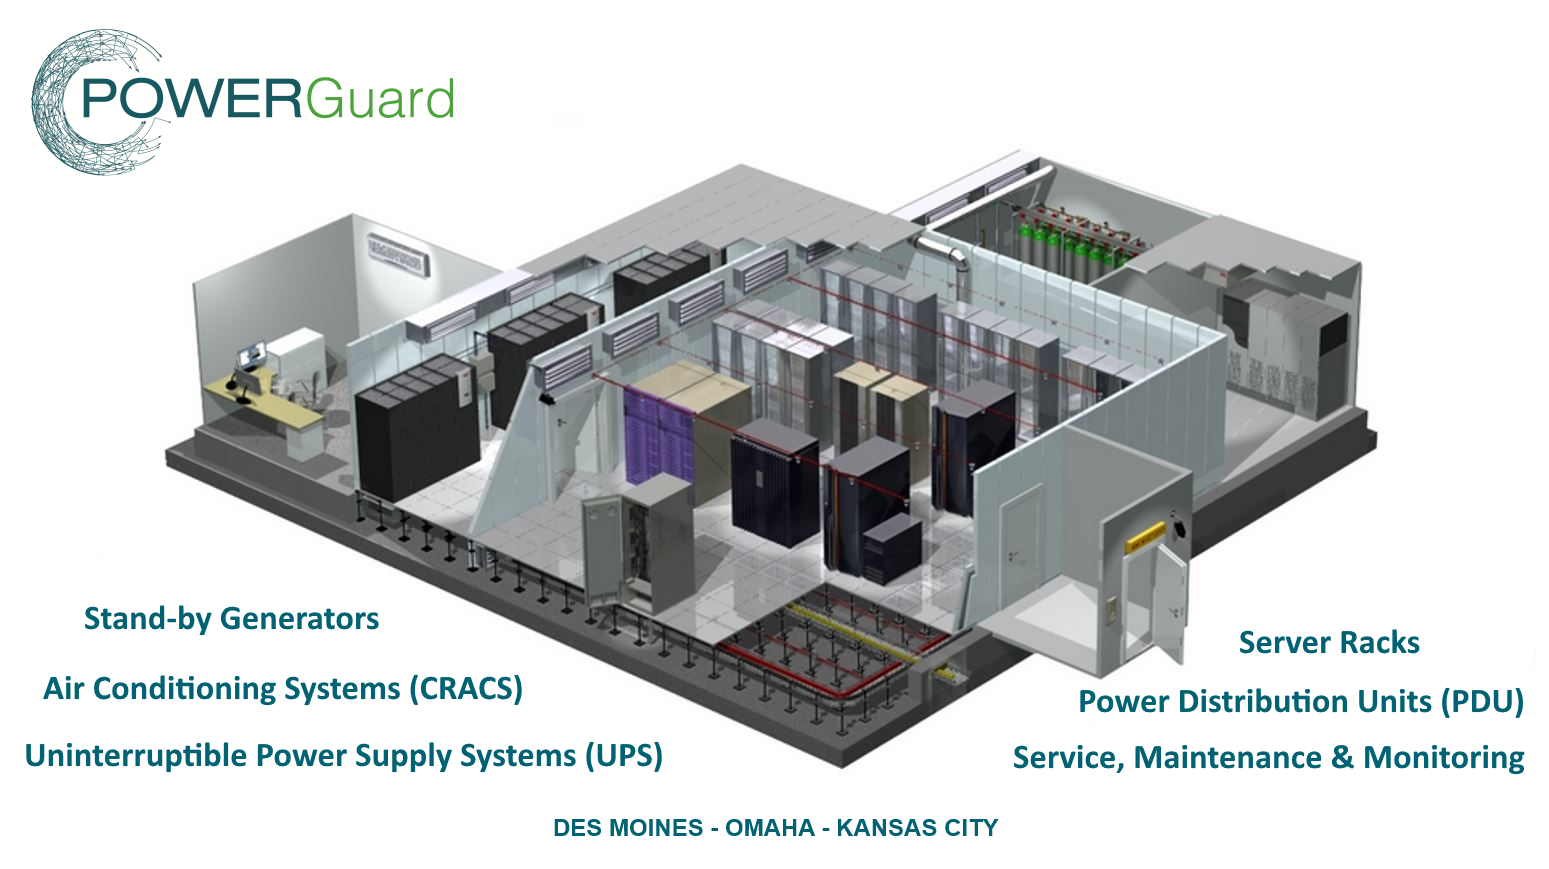 Power Guard builds datacenters